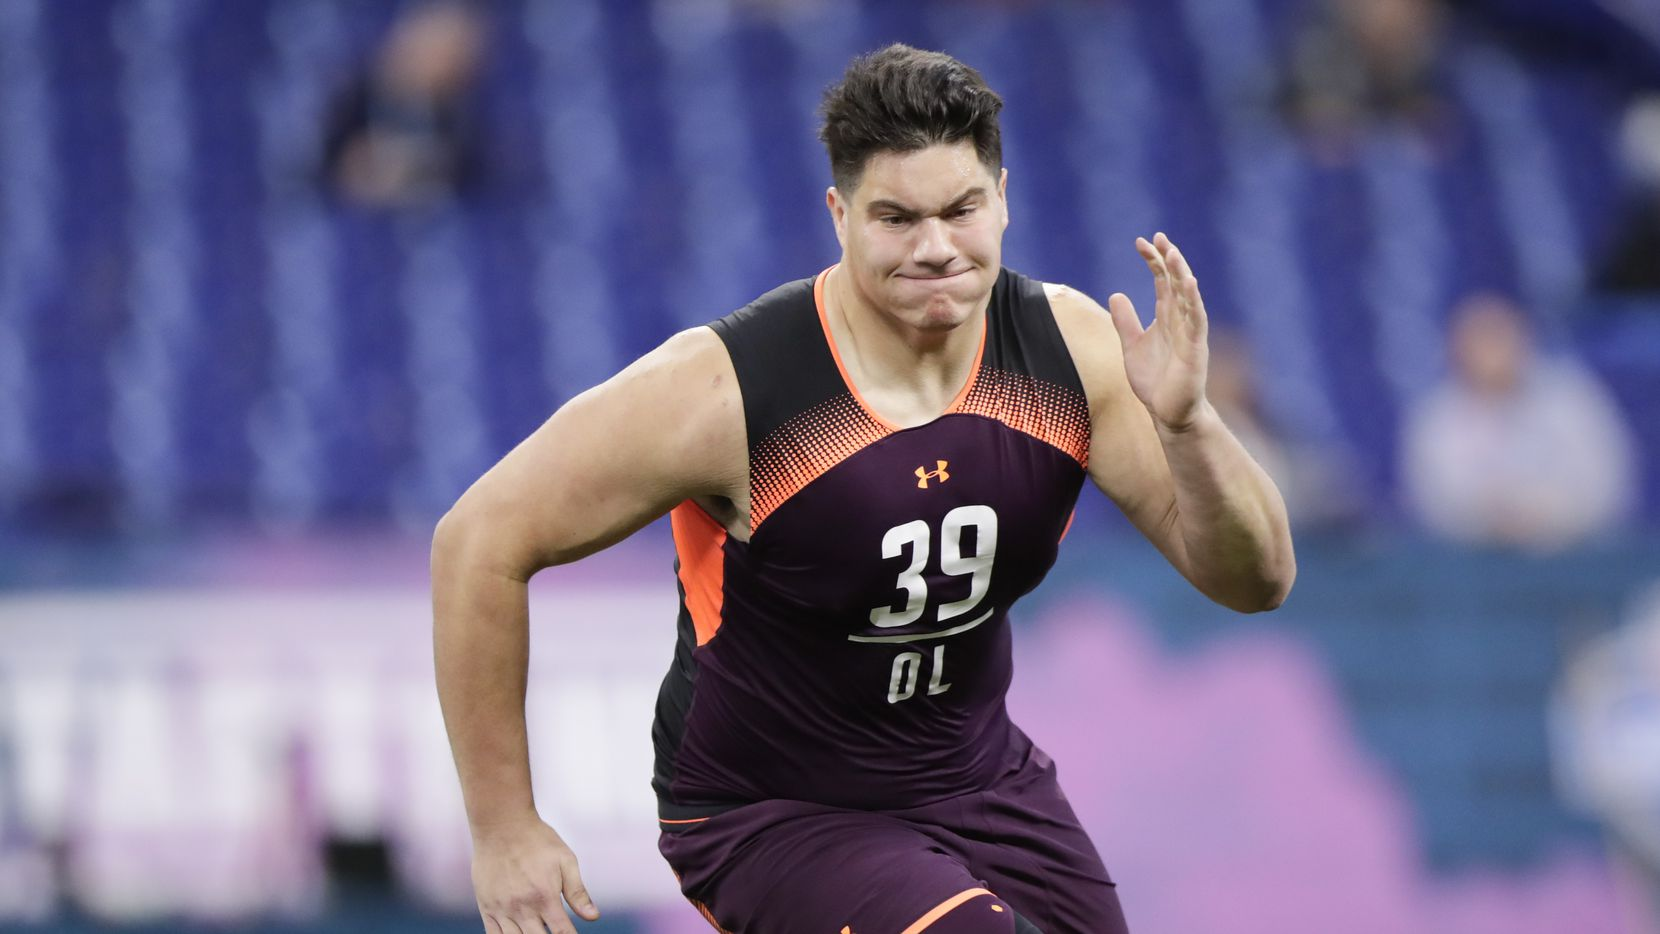 Penn State offensive lineman Connor McGovern runs a drill at the NFL football scouting combine in Indianapolis, Friday, March 1, 2019. (AP Photo/Michael Conroy)